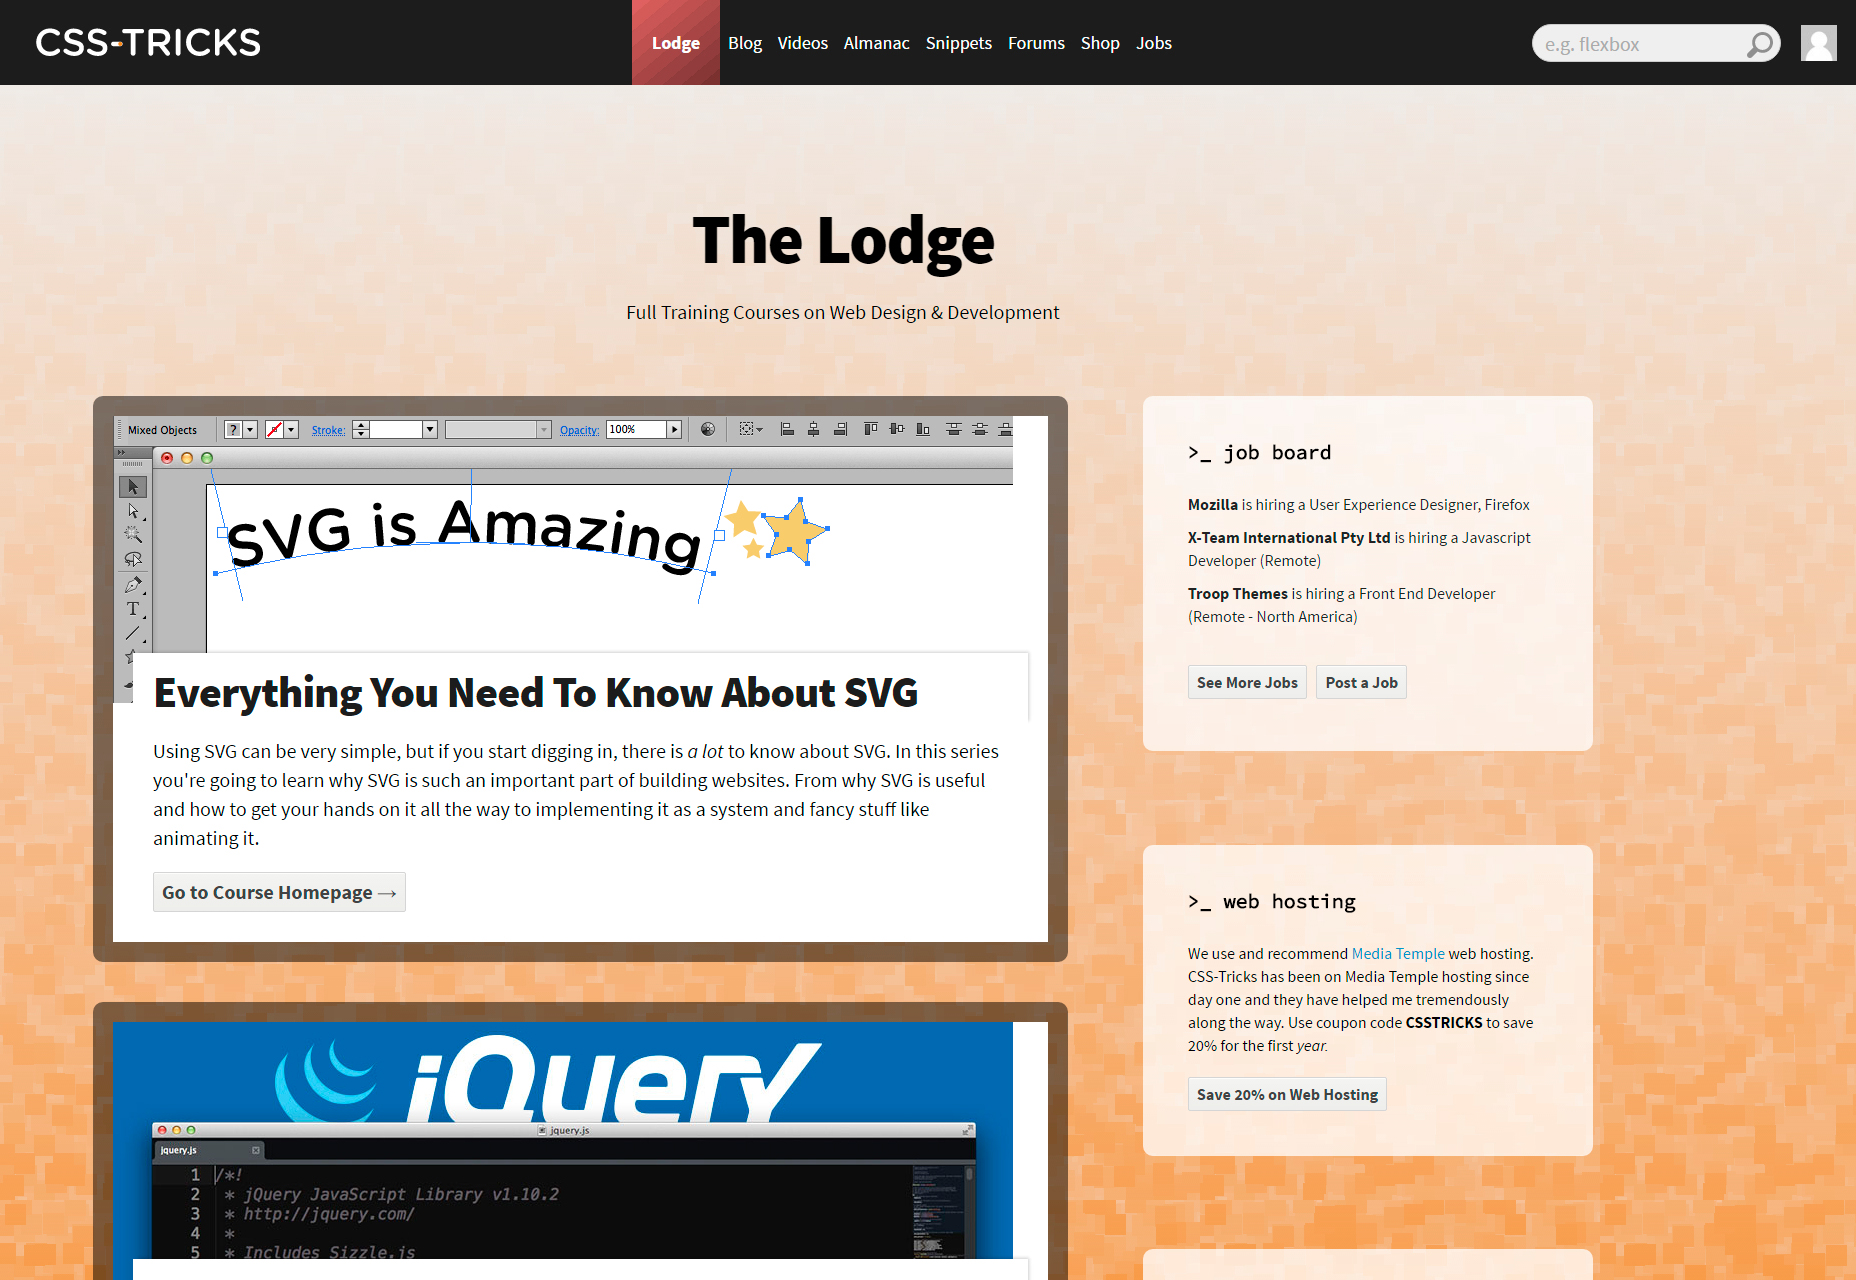 CSS-Tricks' Lodge: Free Web Developing Courses